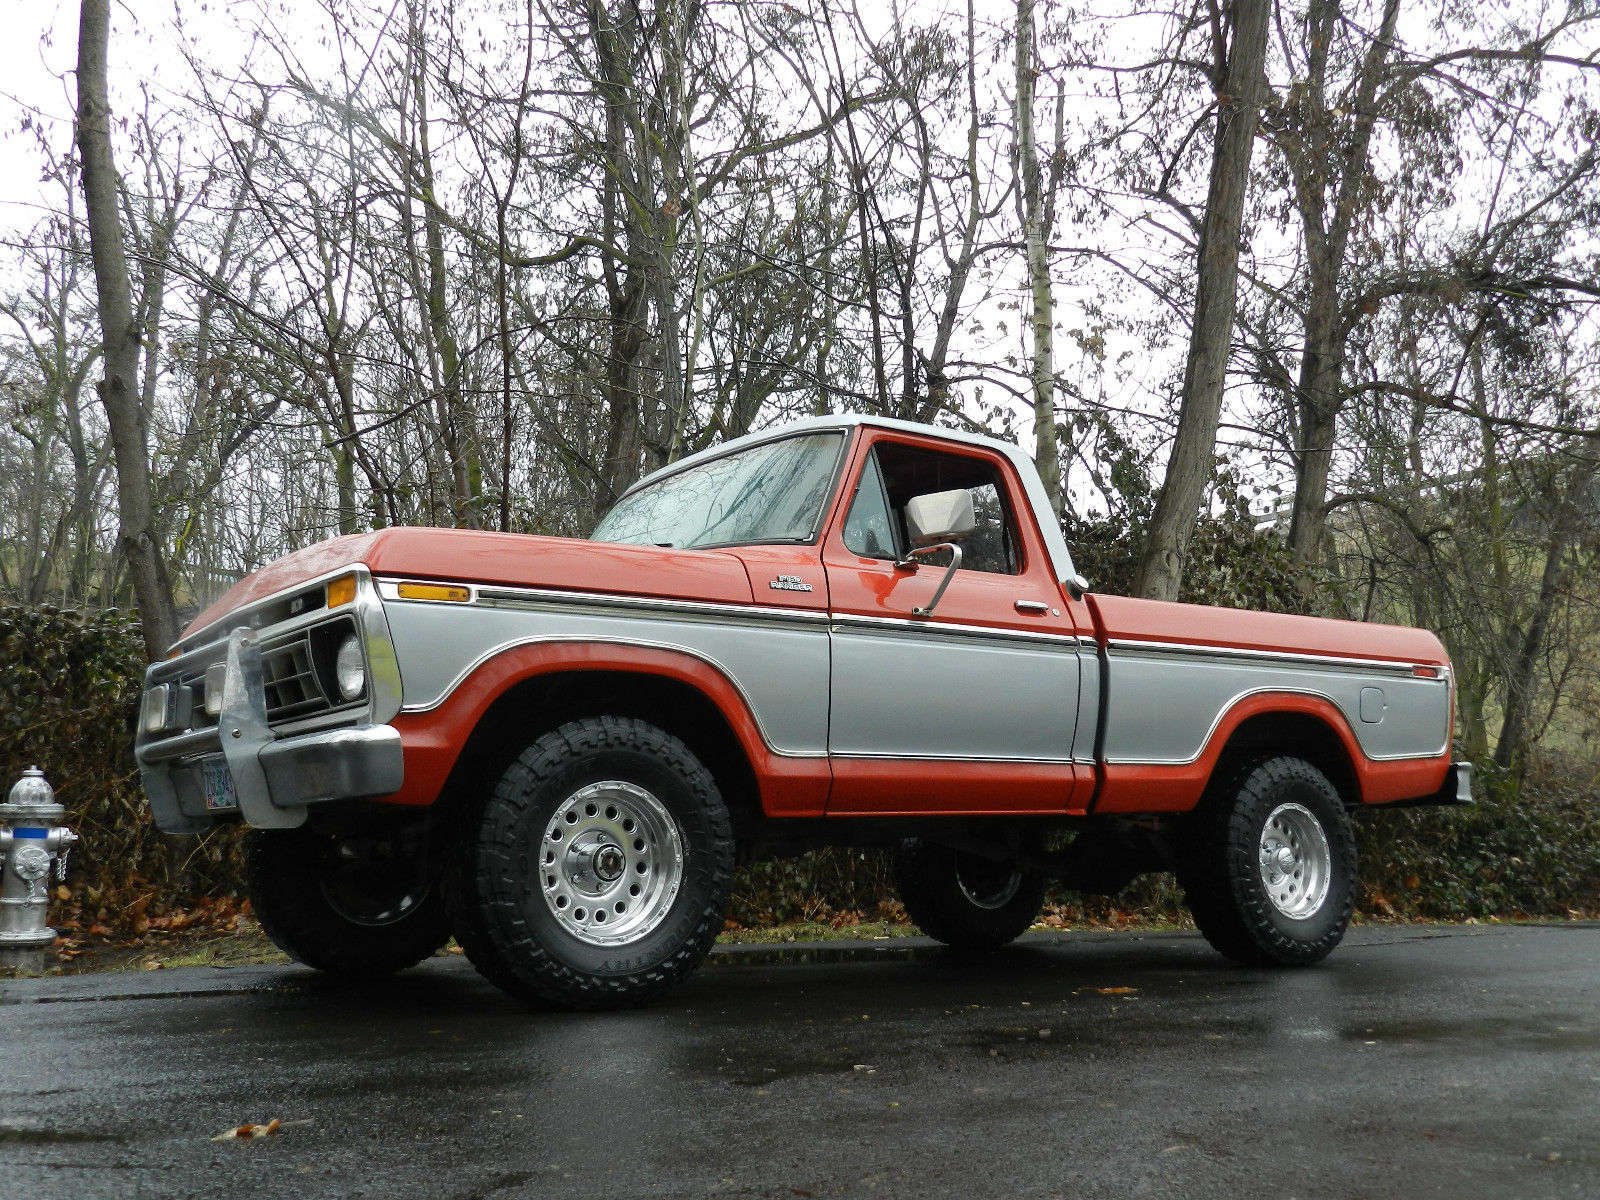 1977 ford f150 ranger xlt 4x4 very nice 2 owners a must. Black Bedroom Furniture Sets. Home Design Ideas